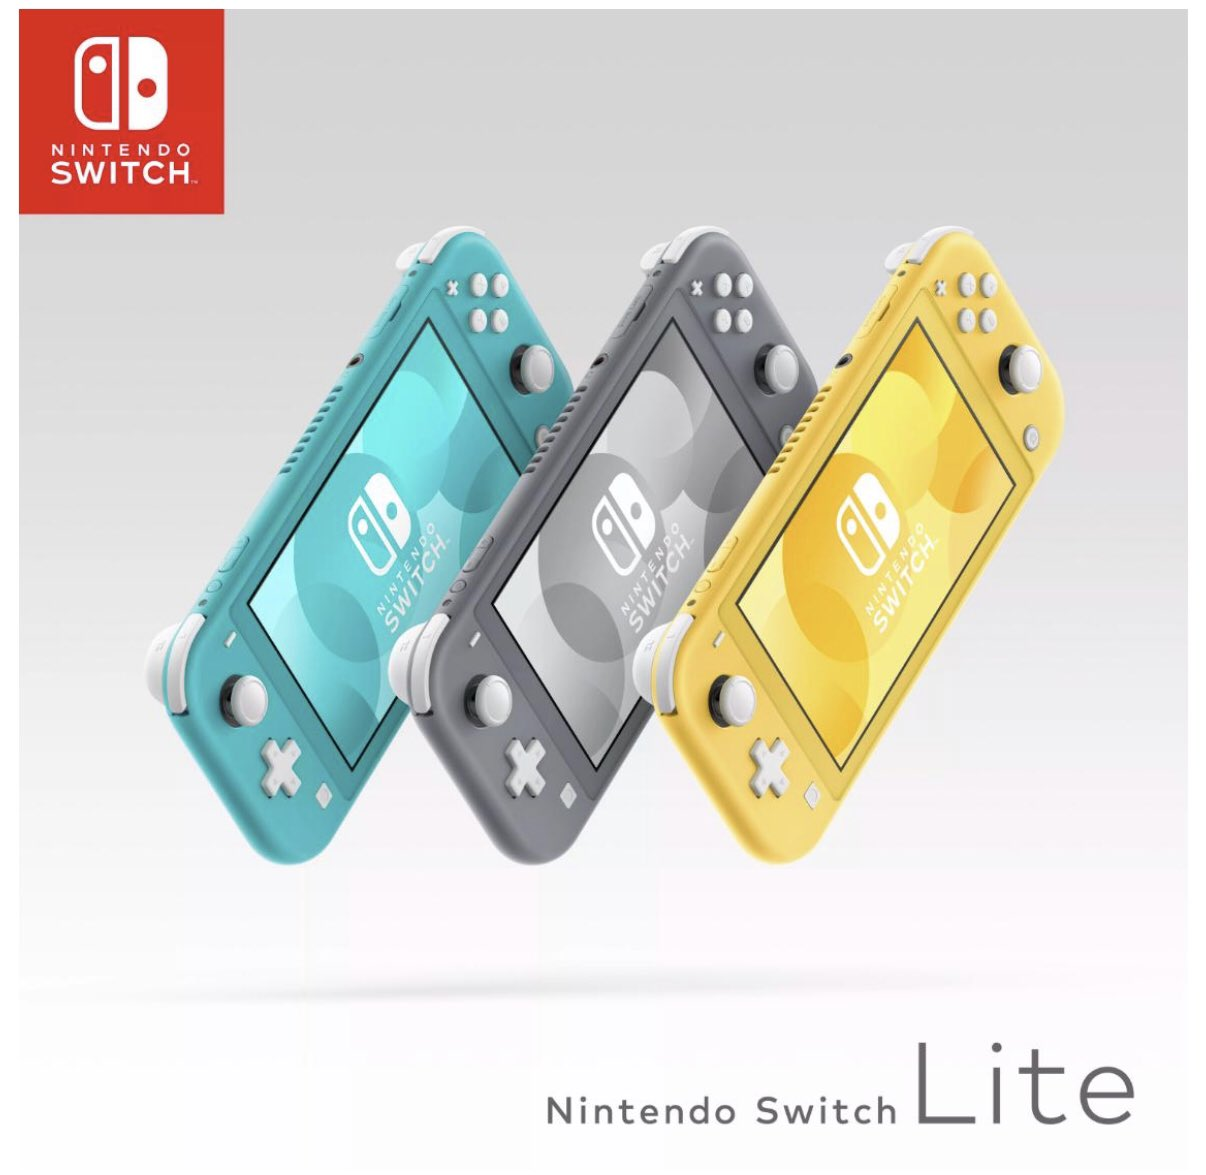 Nintendo Switch Lite is coming in Yellow, Grey, and Turquoise. Paul Gale Network likes each option!